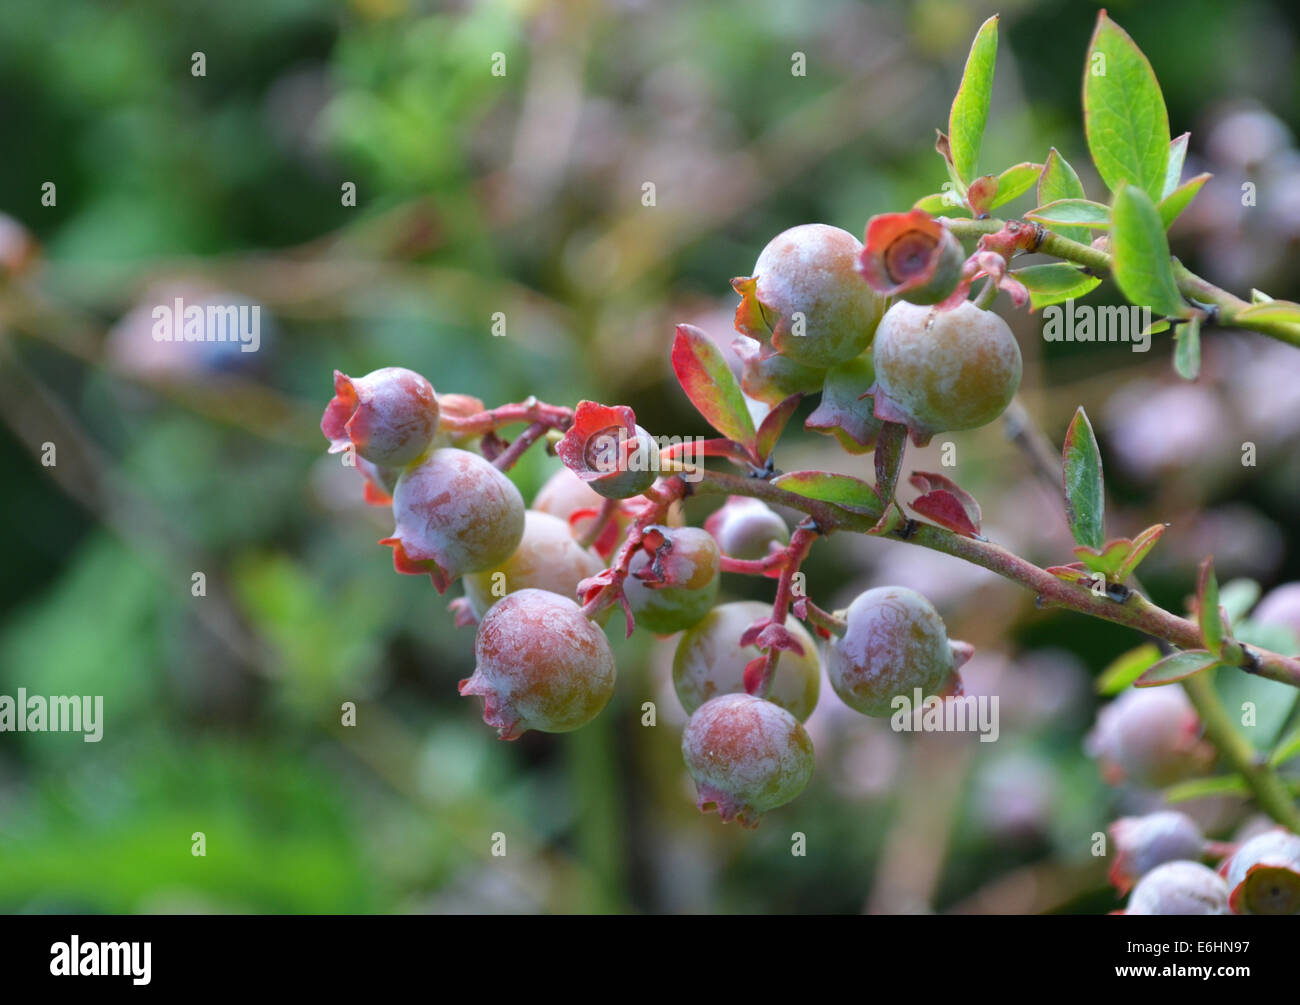 Lowbush blueberry - Stock Image